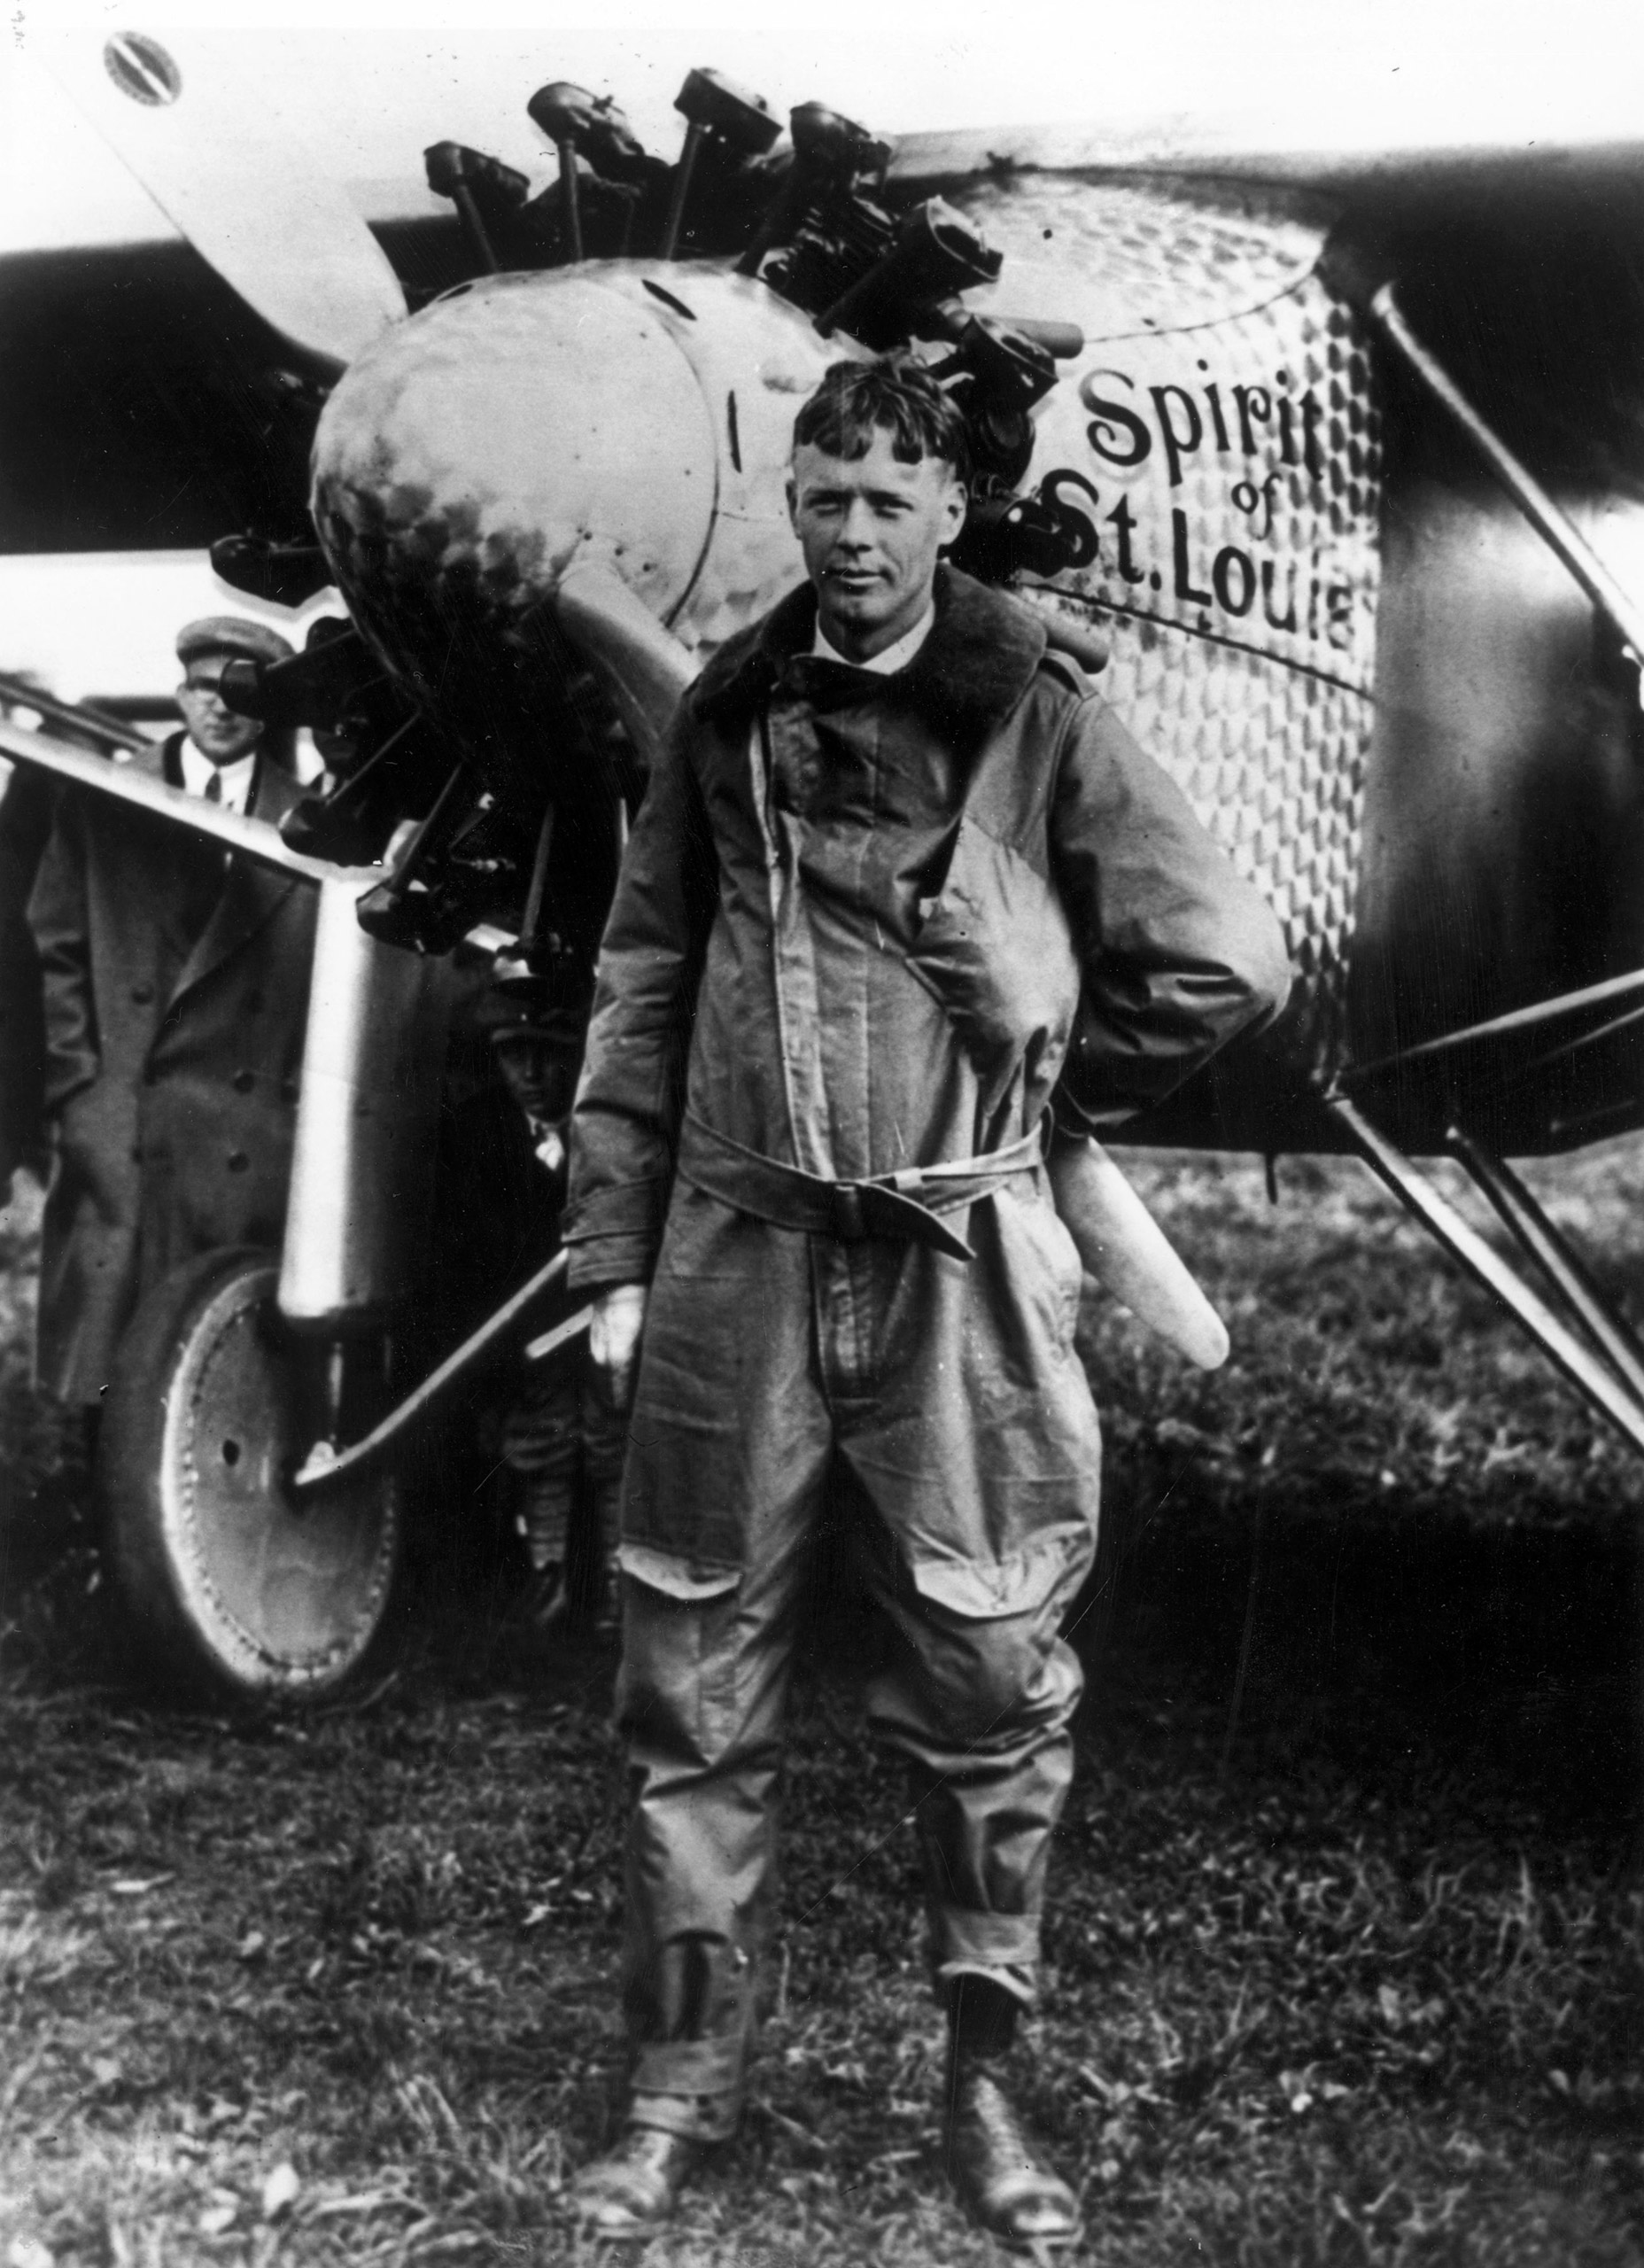 Charles Lindbergh poses with the 'Spirit of St Louis,' the plane he used to make the first non-stop solo flight across the Atlantic, May 1927.